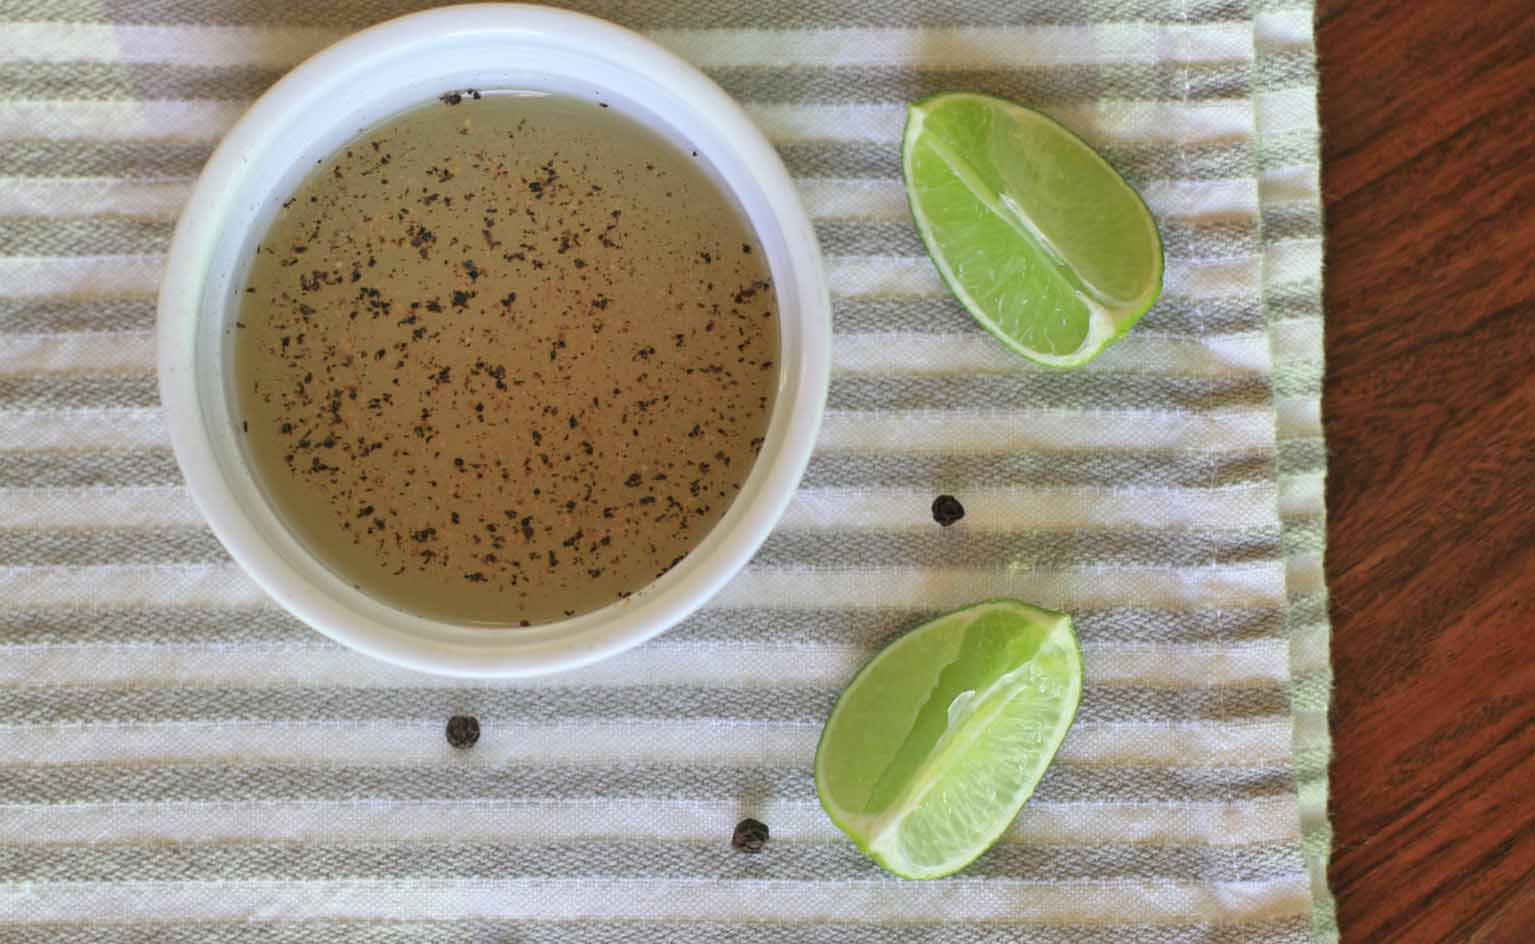 Divide The Pepper And Sea Salt Evenly Among 4 Small Dipping Bowls Or  Ramekins Just Before The Meal, Add The Lime Juice (or Squeeze The Limes)  Over The